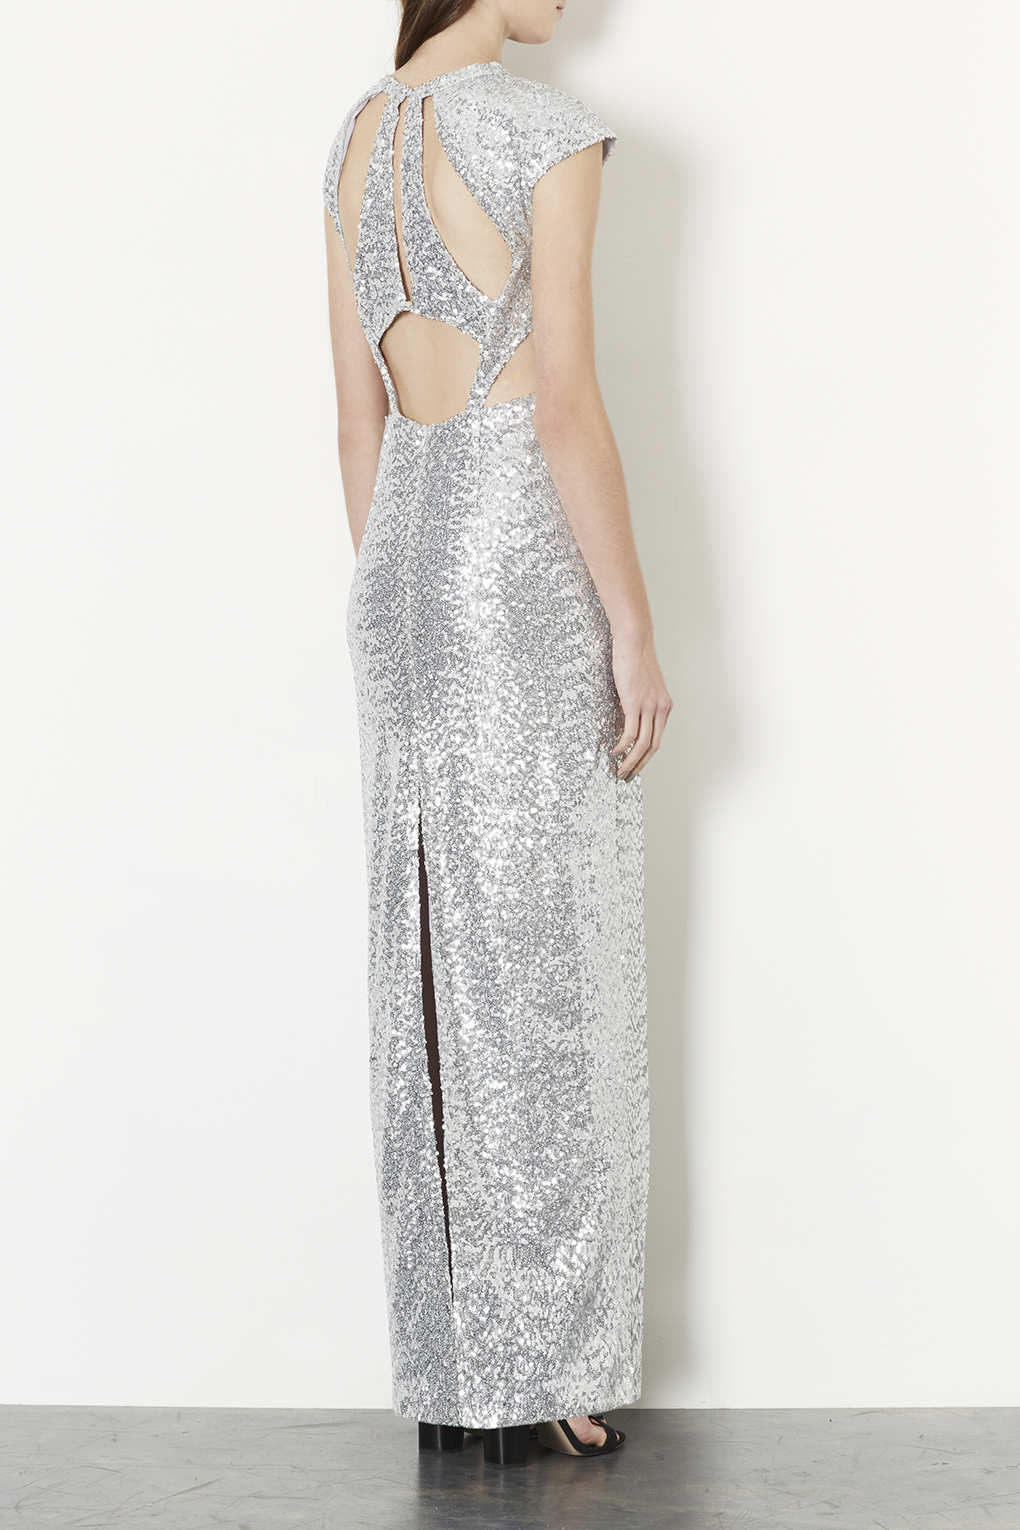 Lyst Topshop Sequin Cut Out Back Maxi Dress In Metallic